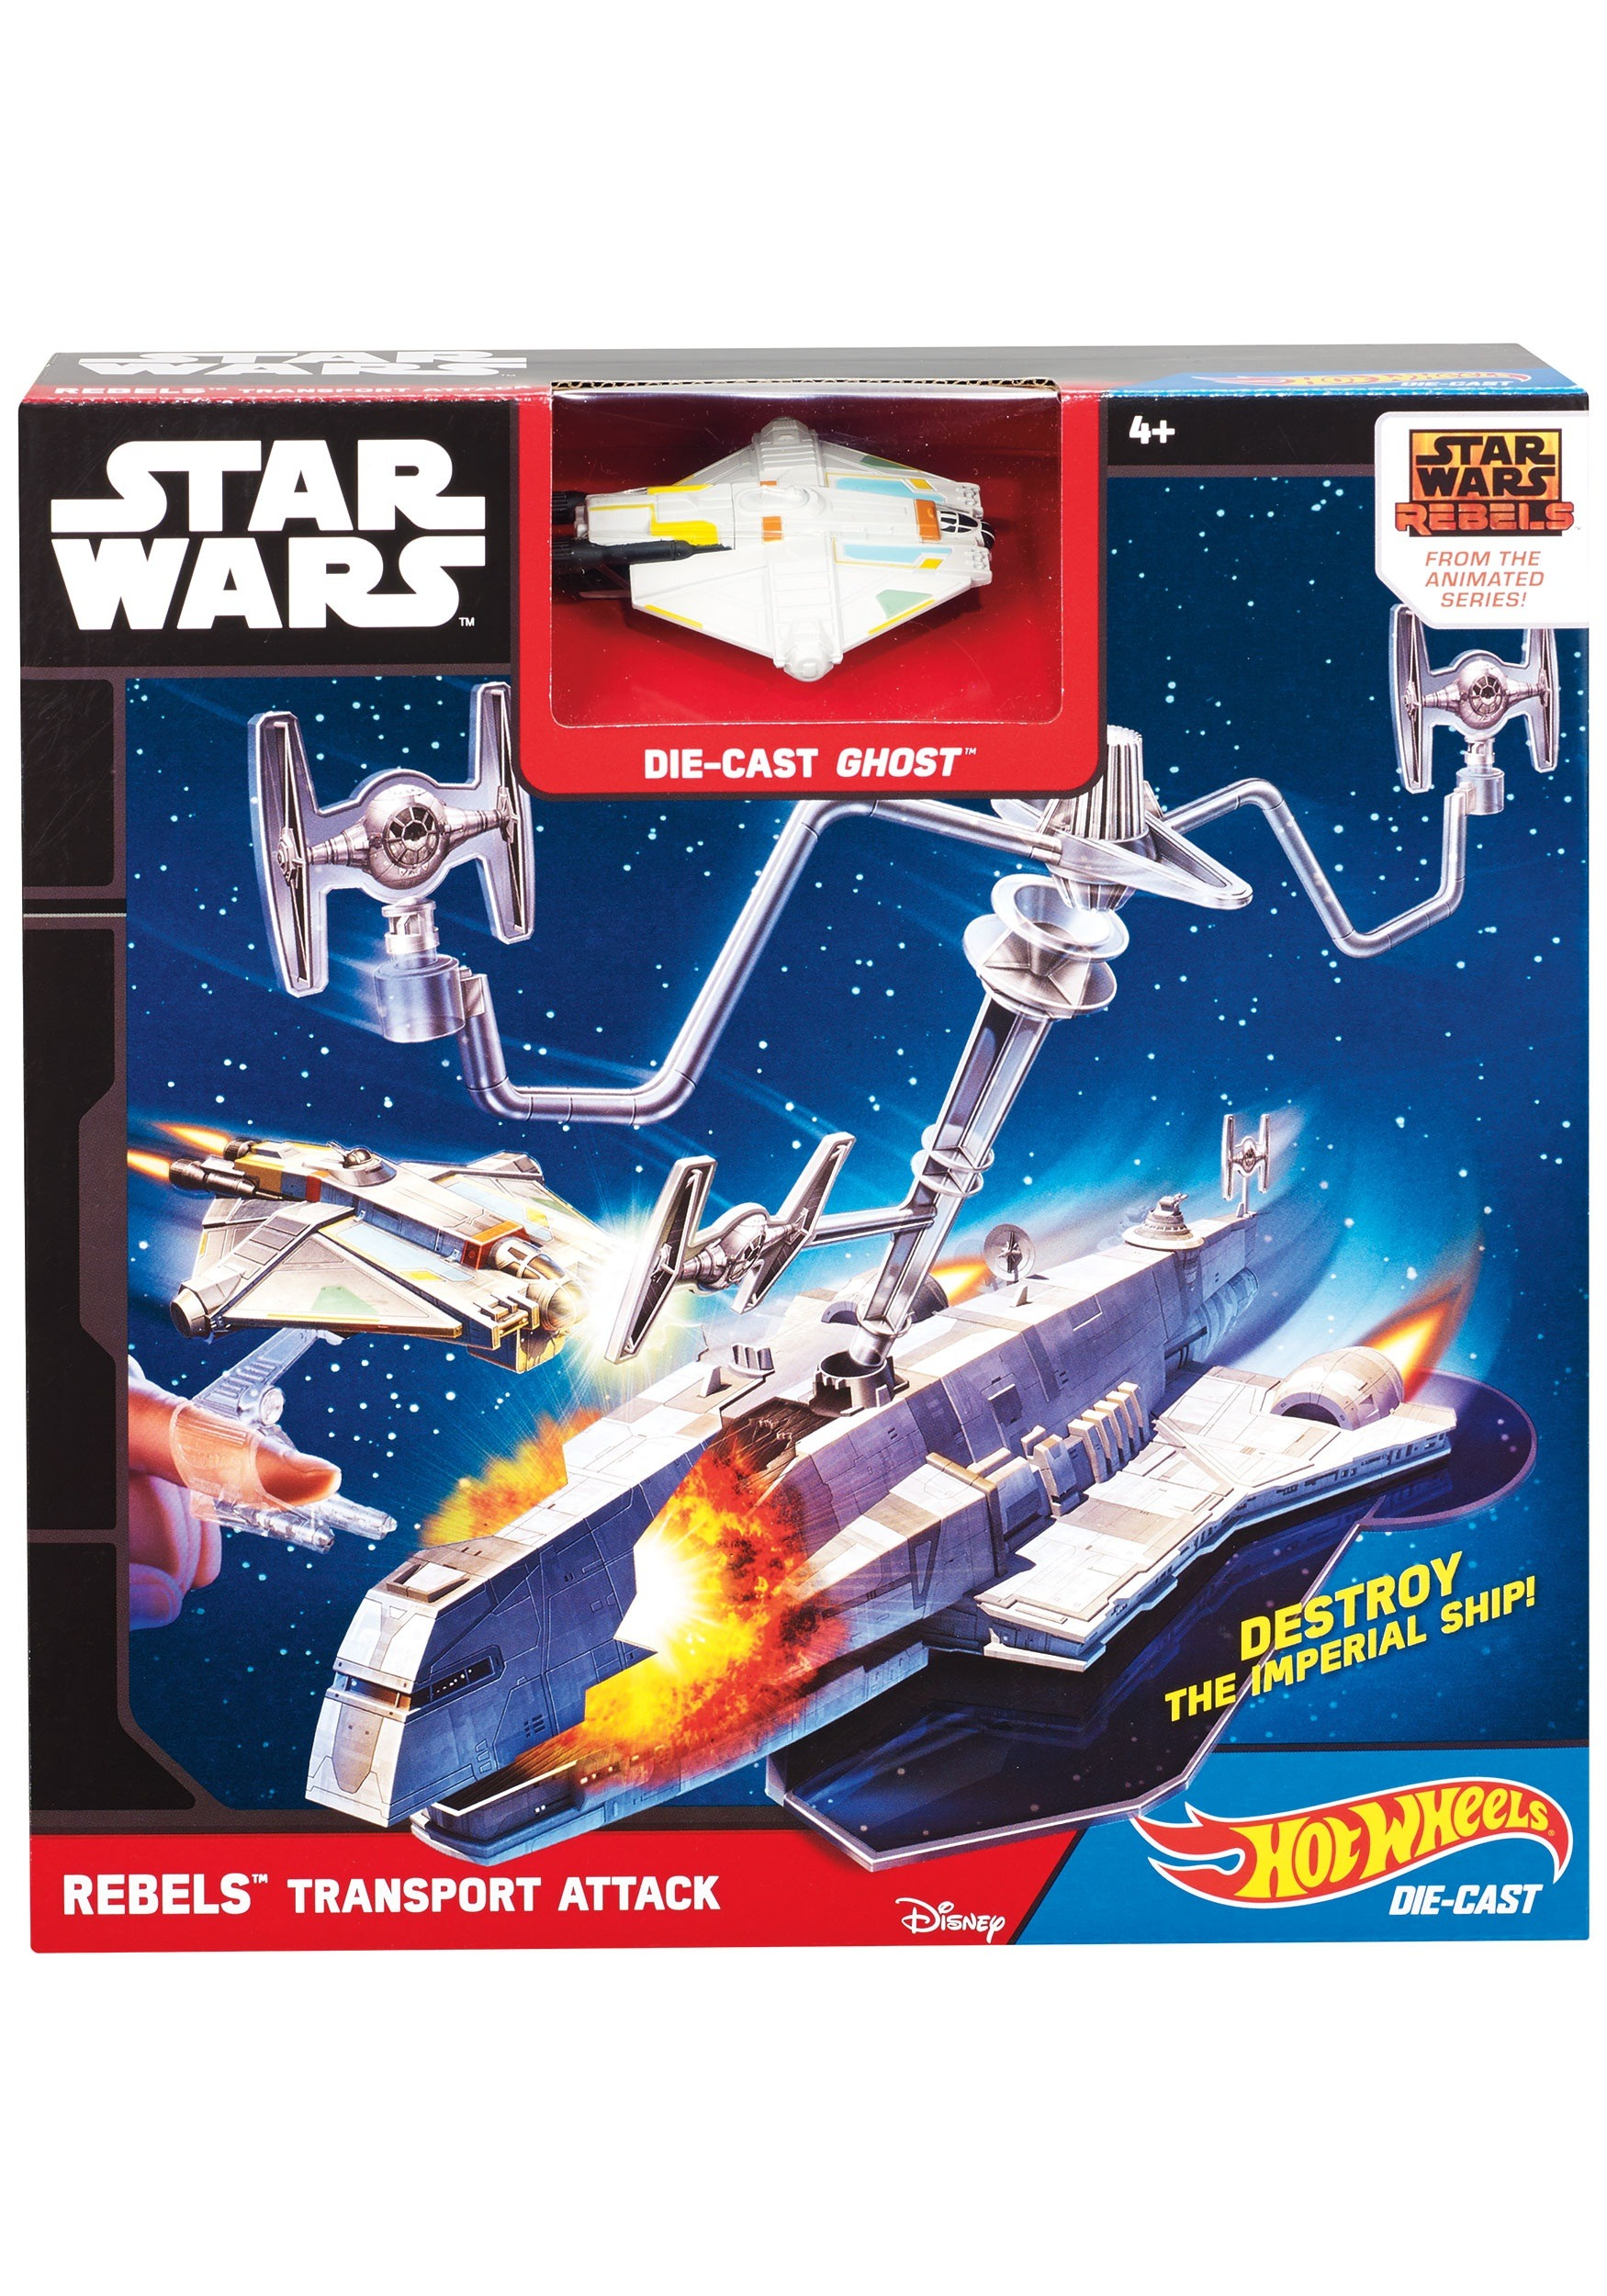 c2c300986be4 Star Wars Rebels Transport Attack Playset from Hot Wheels